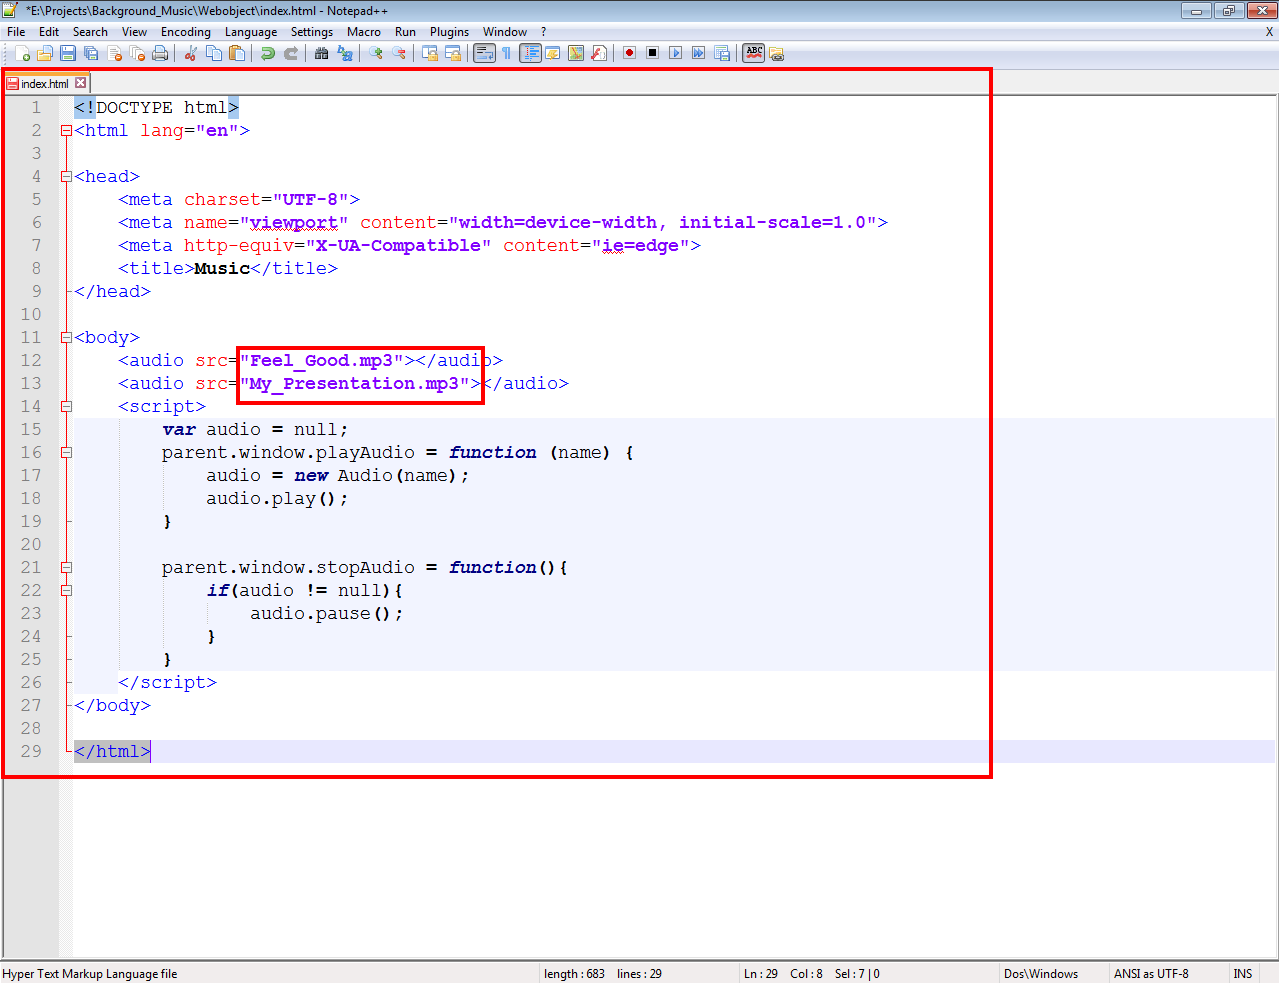 reated a file called index.html in text editor